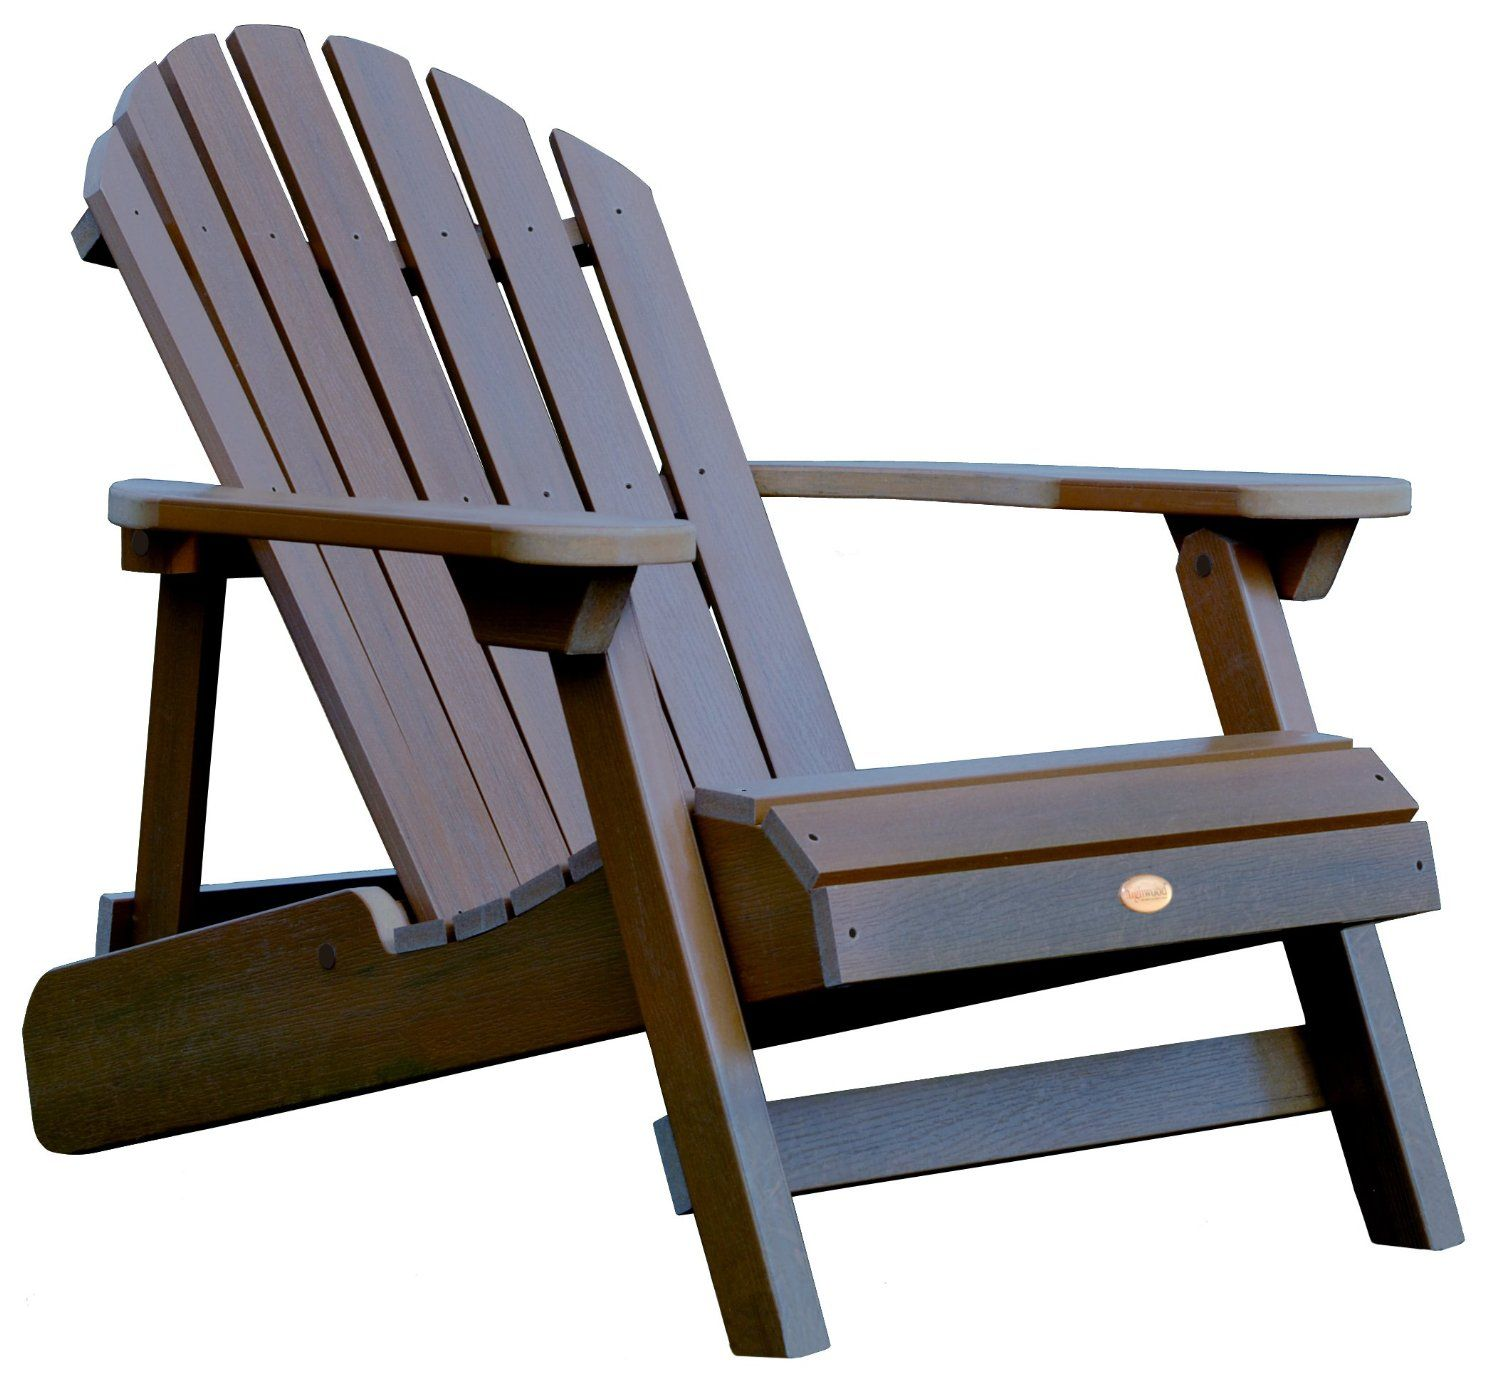 Amazon.com : Highwood Hamilton Folding and Reclining Adirondack ...